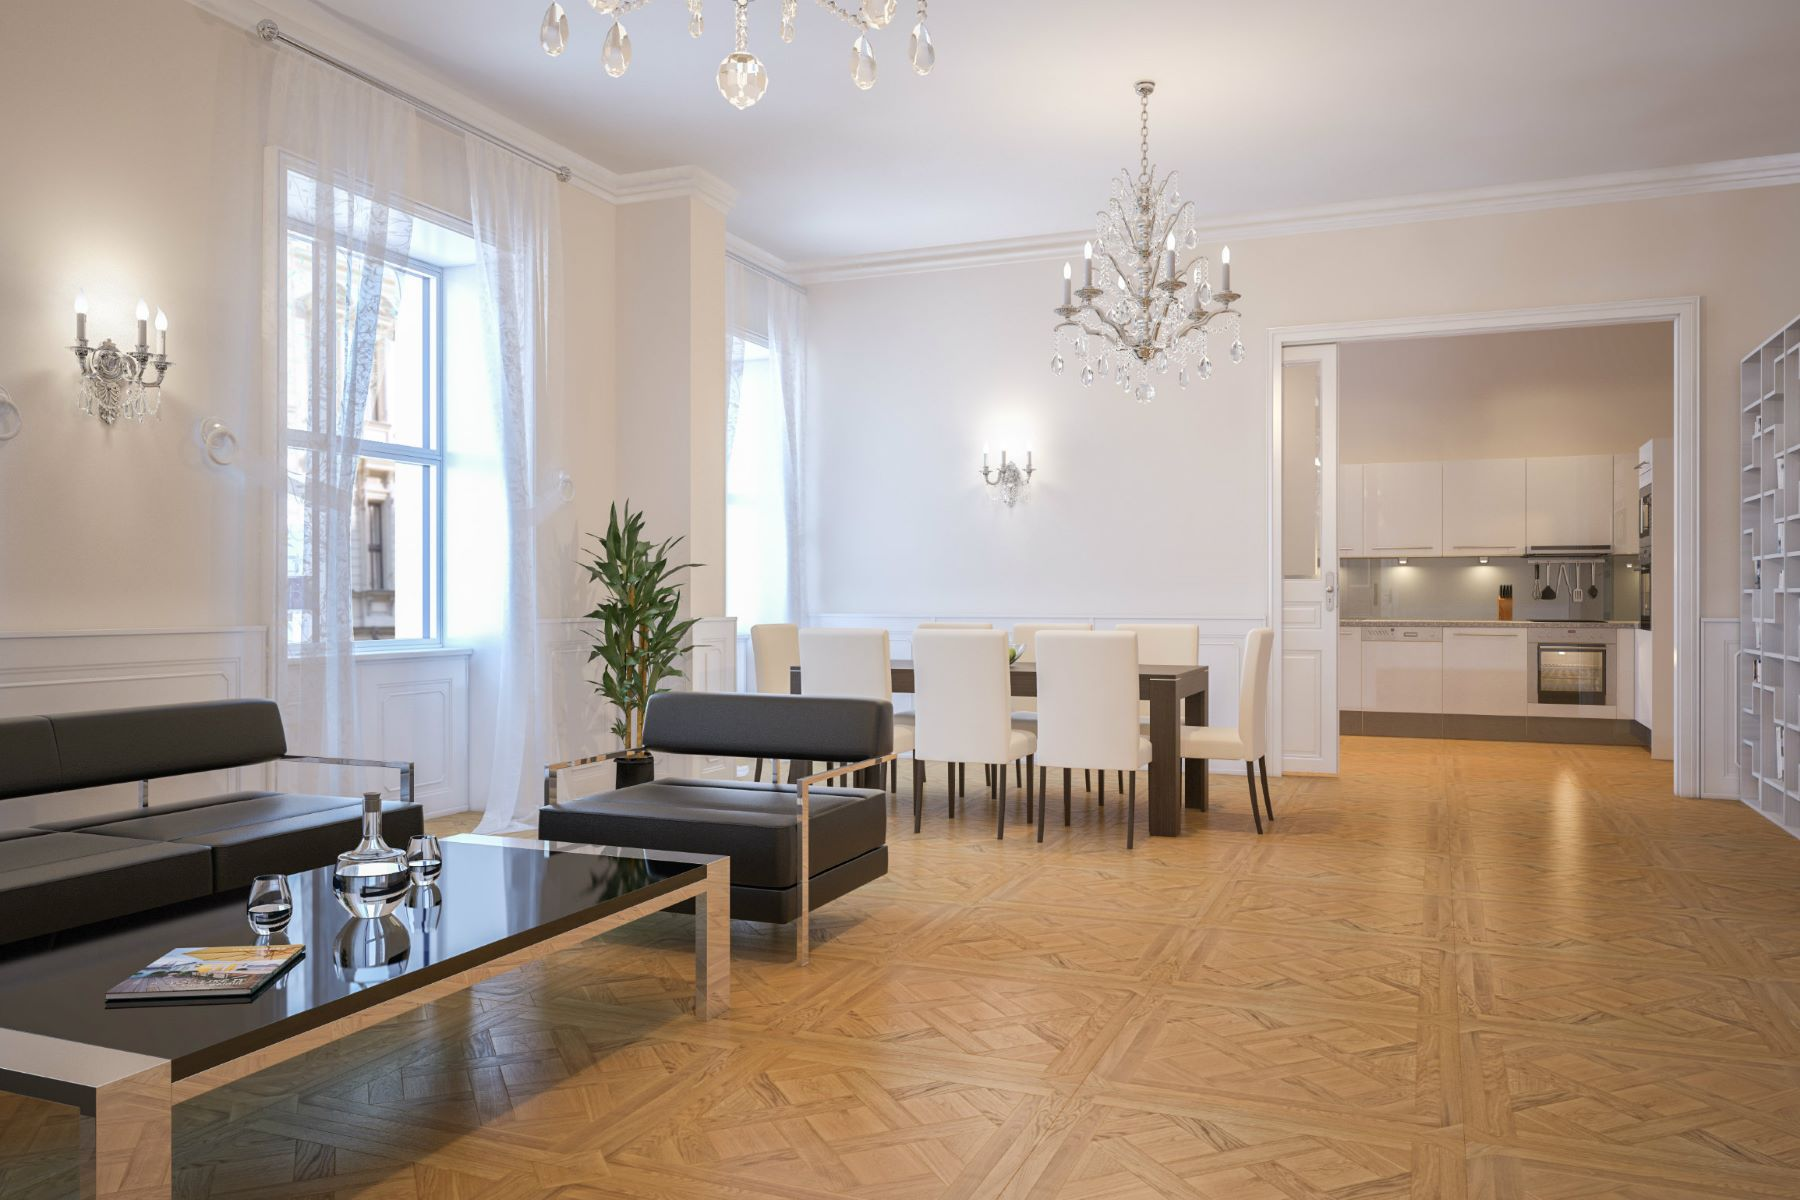 Apartment for Sale at LUXURIOUS 2 BED APARTMENT Vienna, Cities In Austria, 1010 Austria